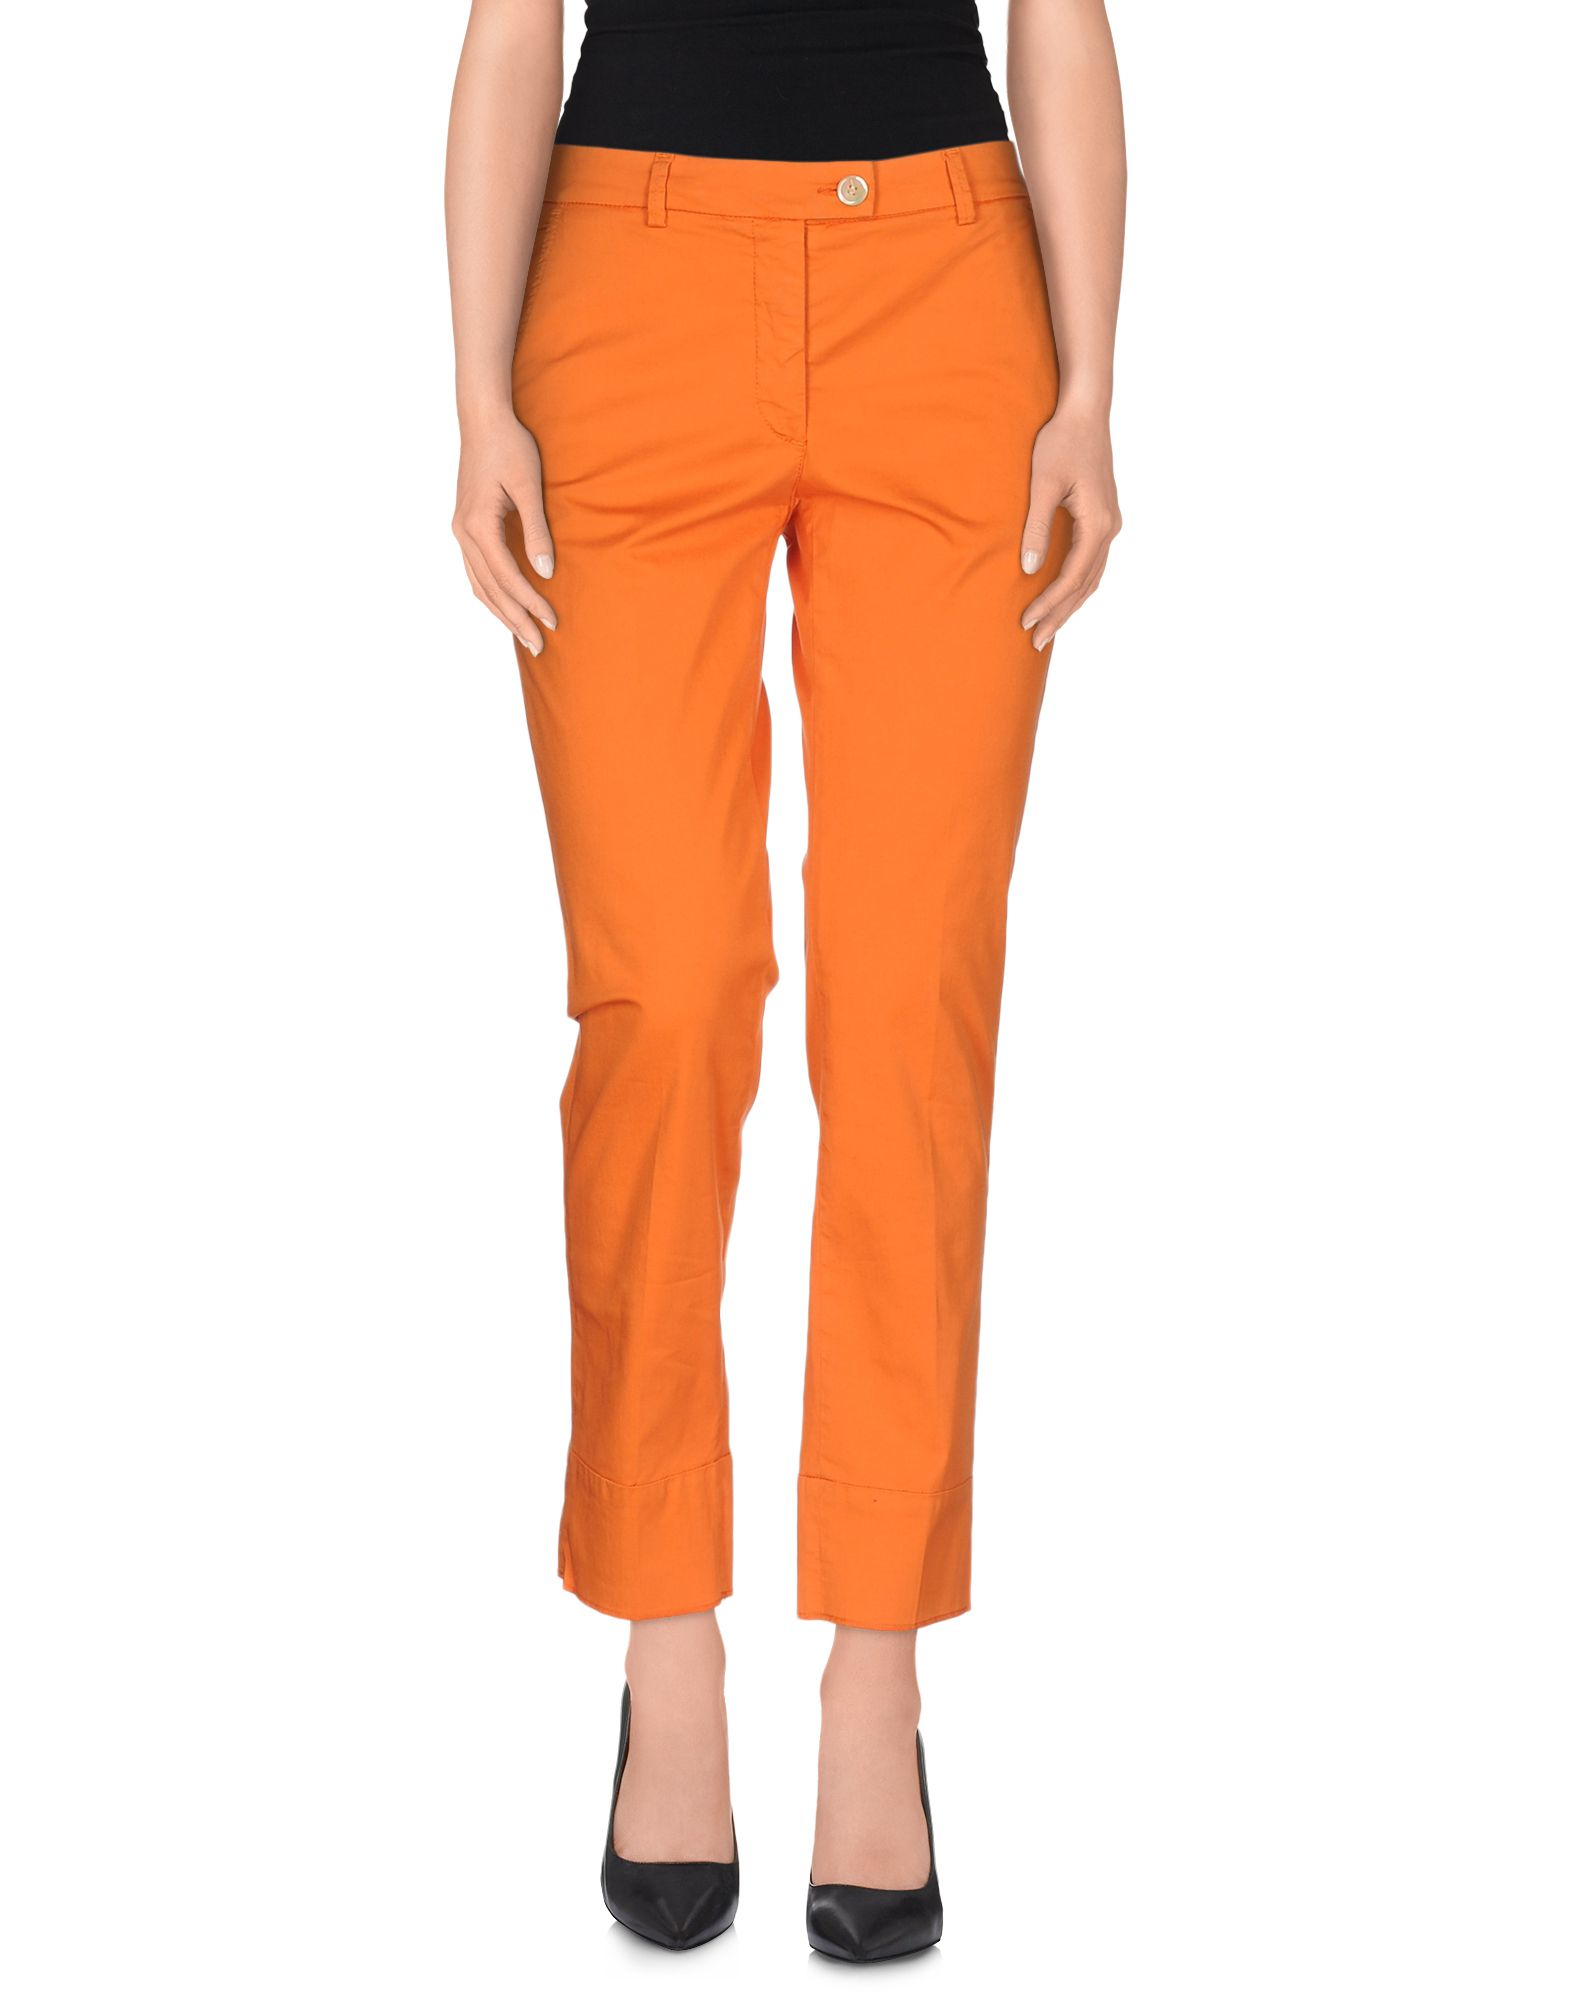 Awesome Orange Skinny Trousers  Casual Trousers  Trousers  Leggings  Women